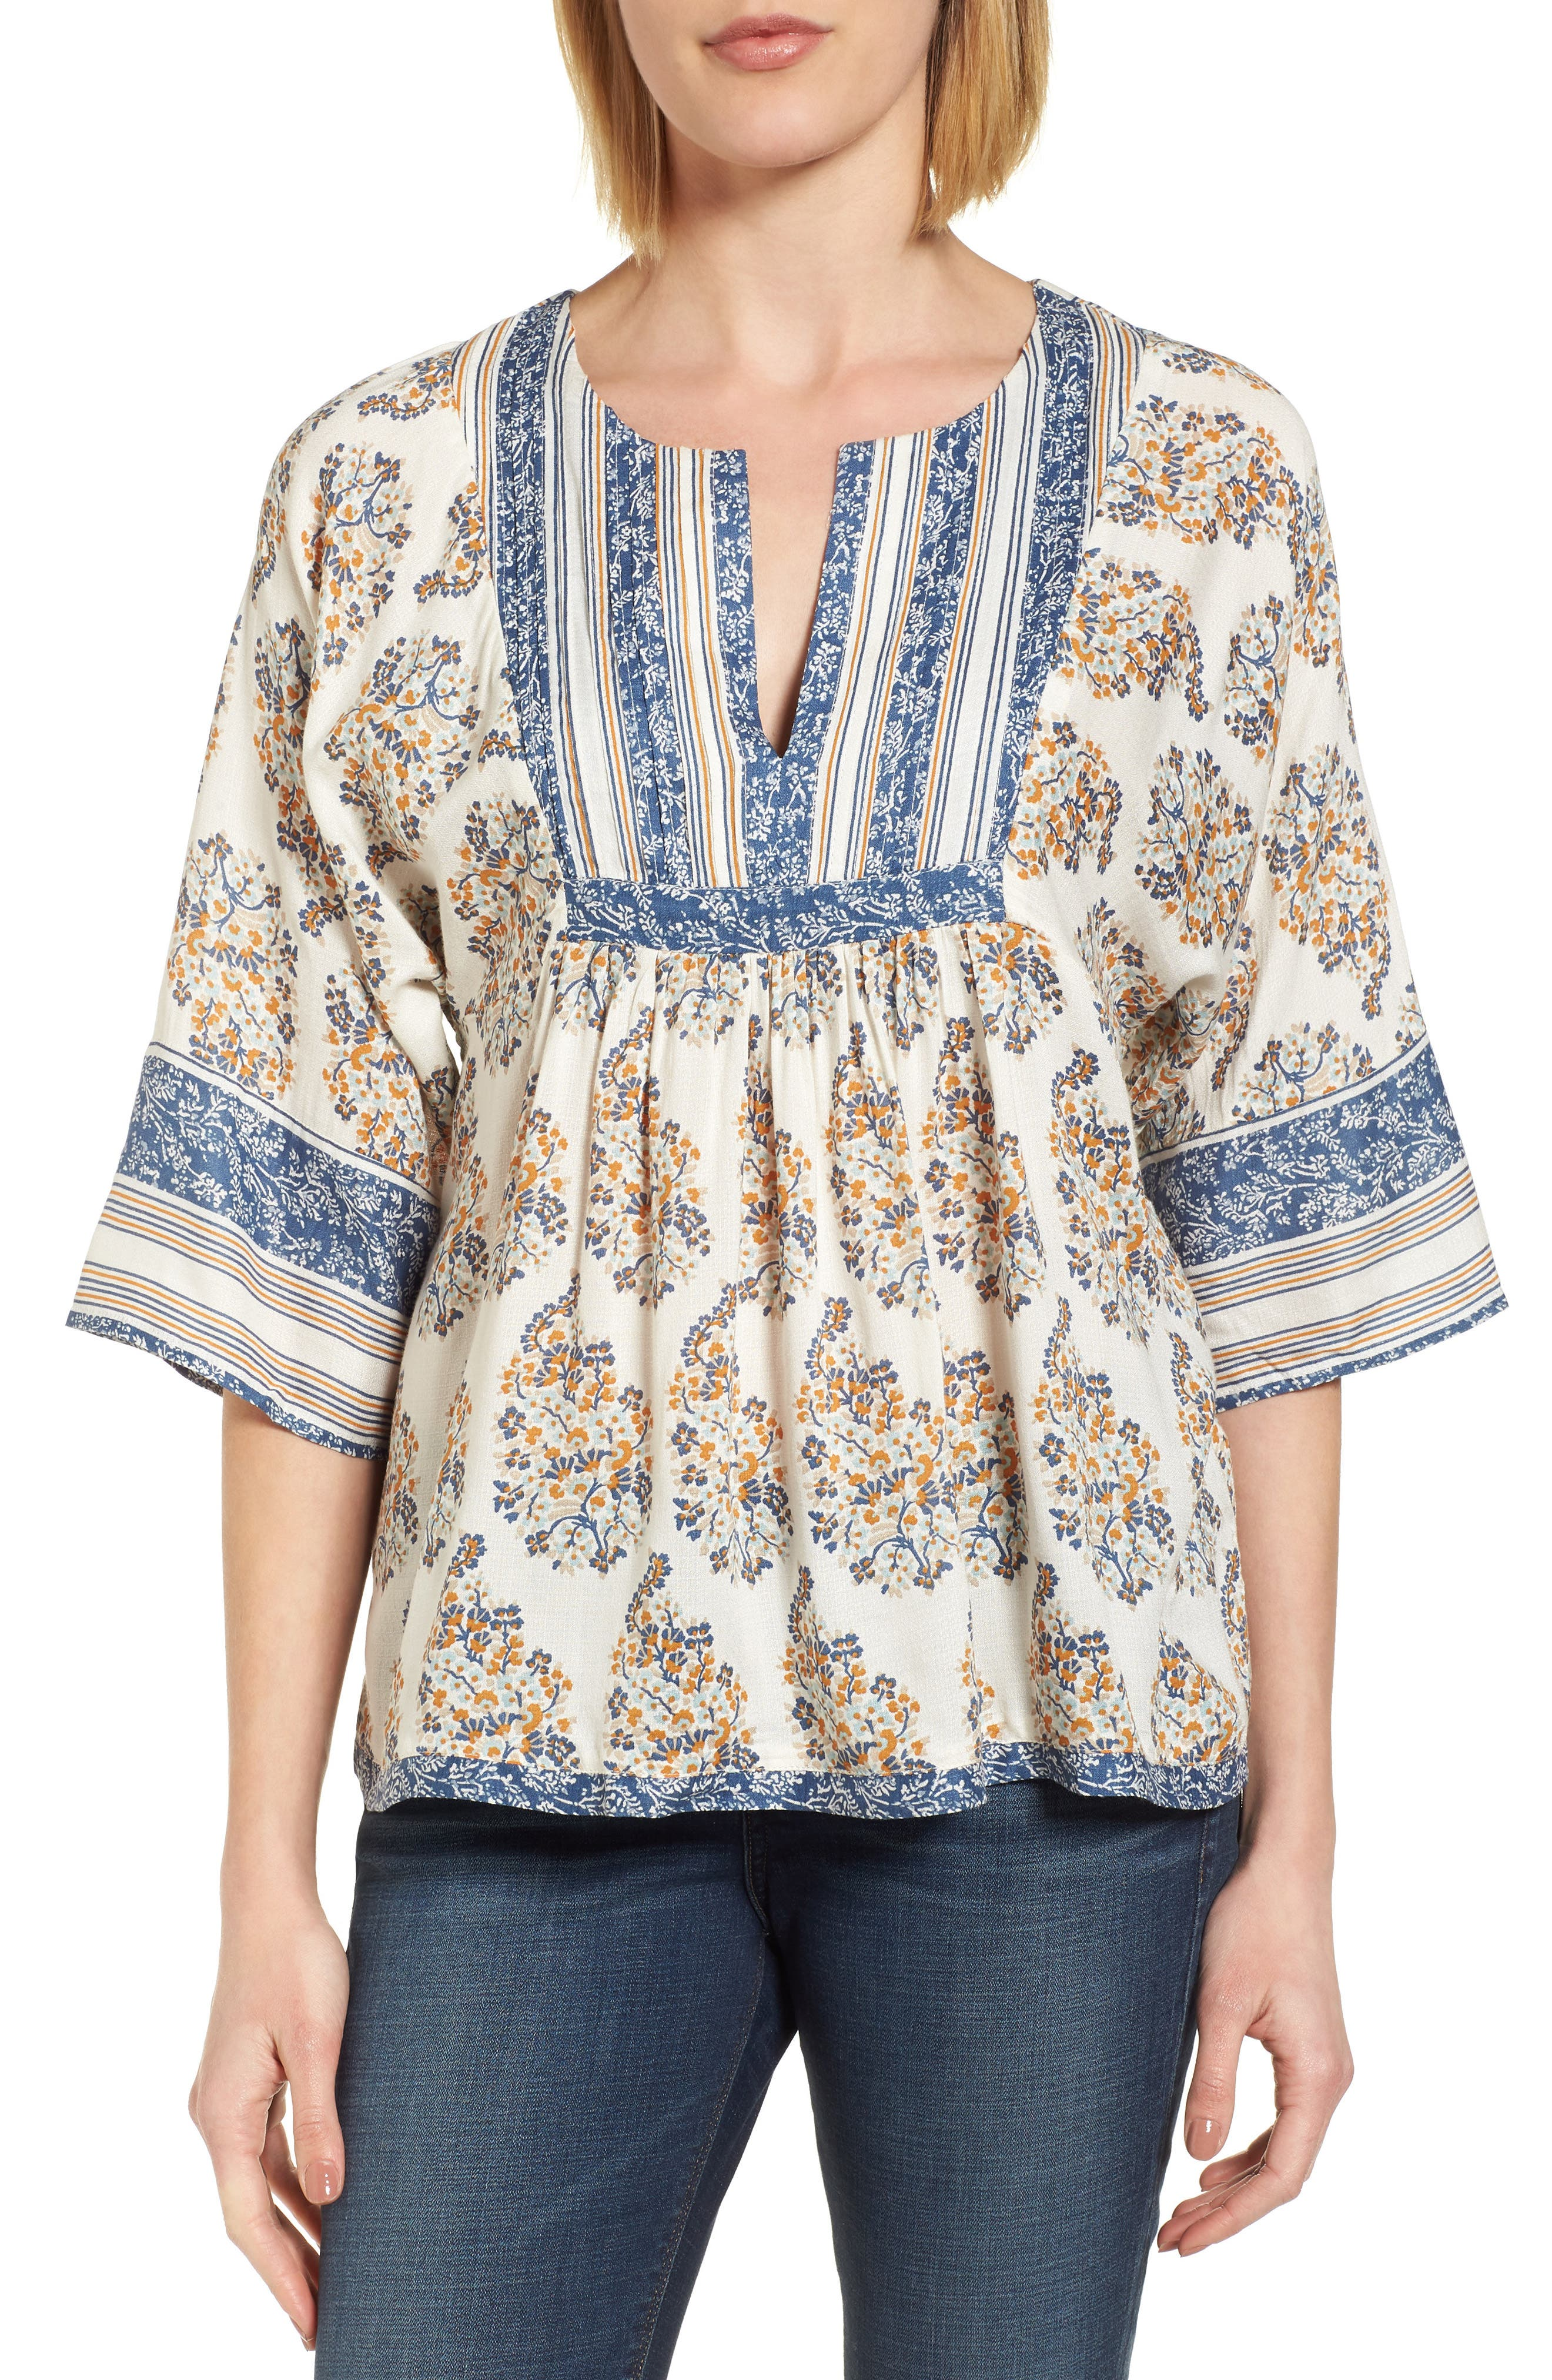 Alternate Image 1 Selected - Lucky Brand Mixed Print Peasant Top